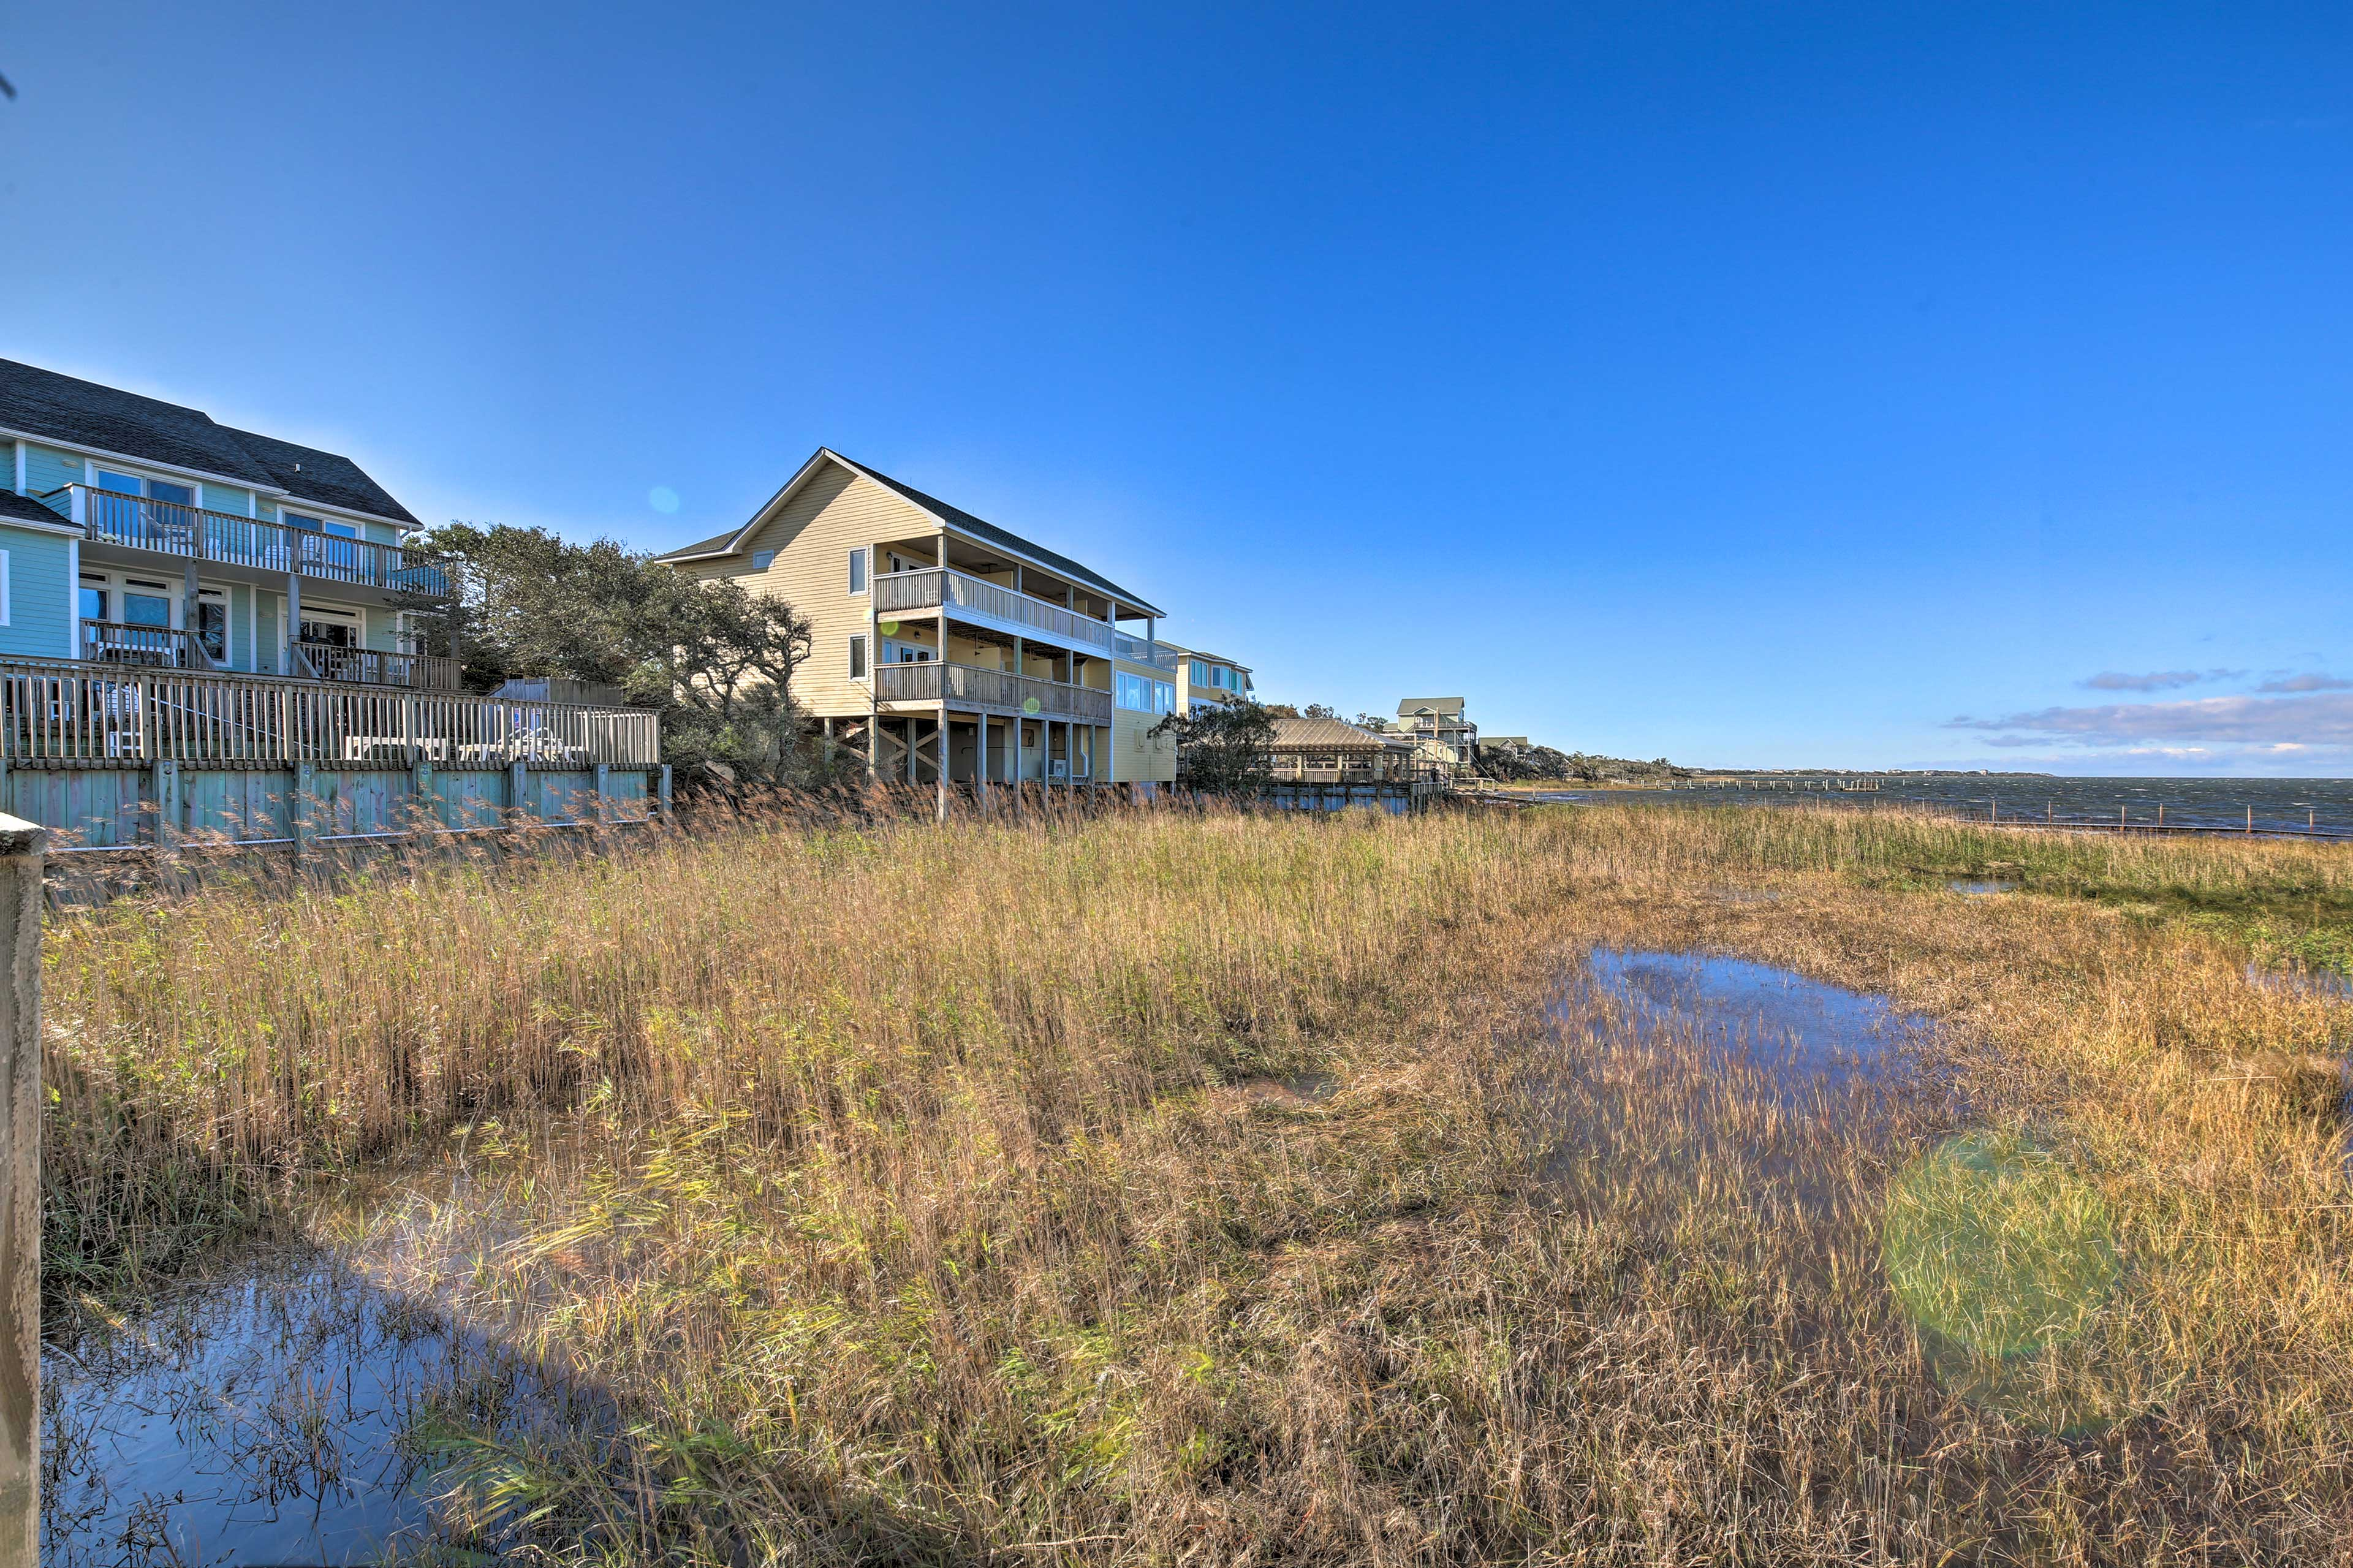 Make this Buxton cottage your Outer Banks home-away-from-home!